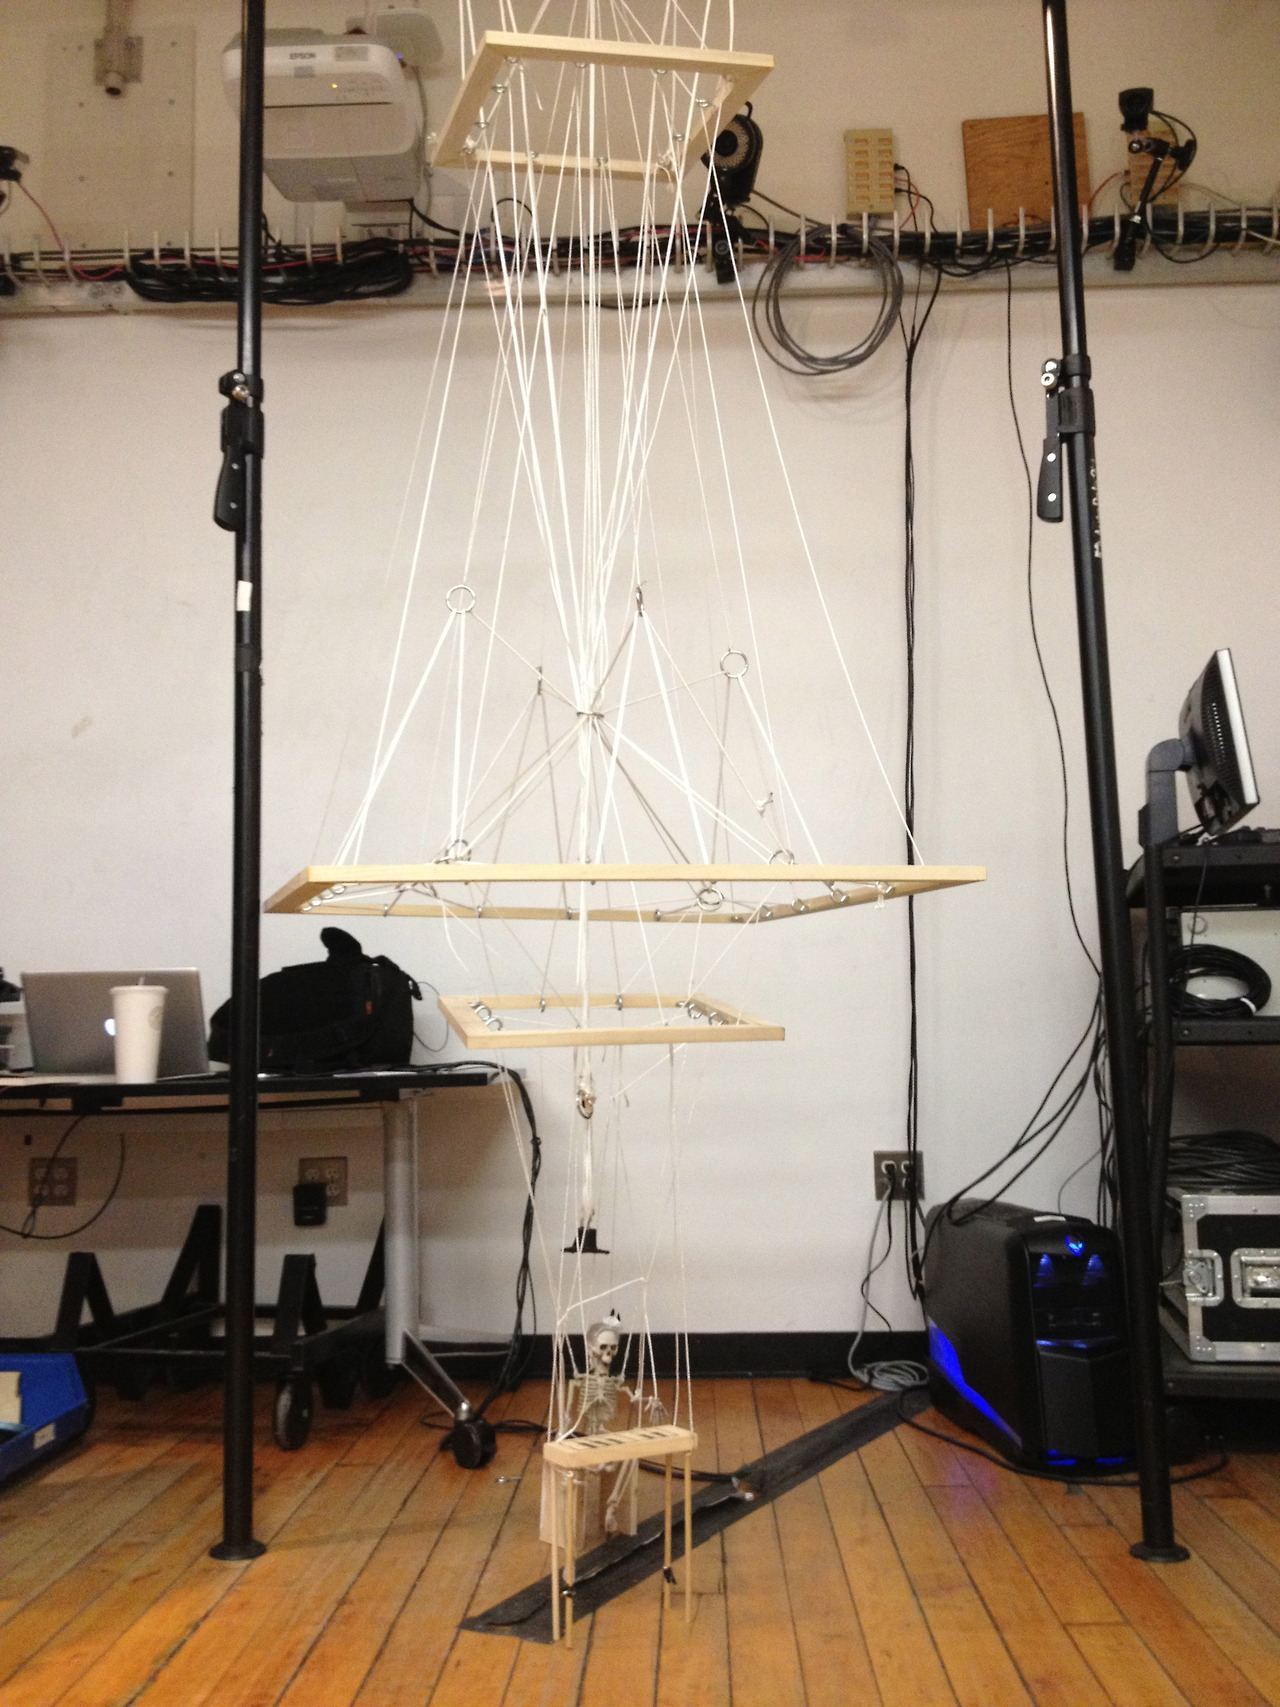 Rube Goldberg rope sculpture: when the frames move, the skeleton is lowered onto his tiny piano